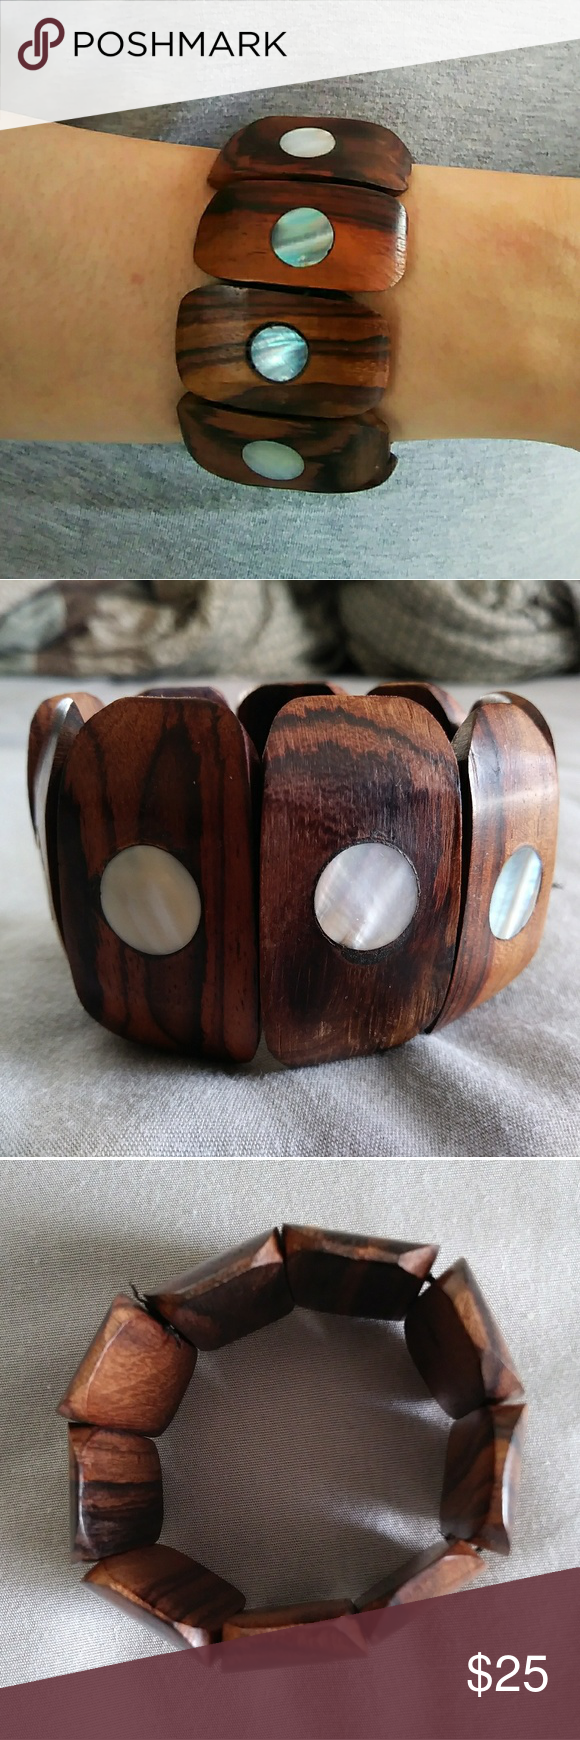 🆓 GIFT | Wooden Circle Shell Inlay Bracelet** ✨ OR $5 *FREE GIFT w/ any purchase! *To receive your gift, please add it to your bundle OR request it in a comment on the item that you are purchasing! American Eagle Outfitters Jewelry Bracelets